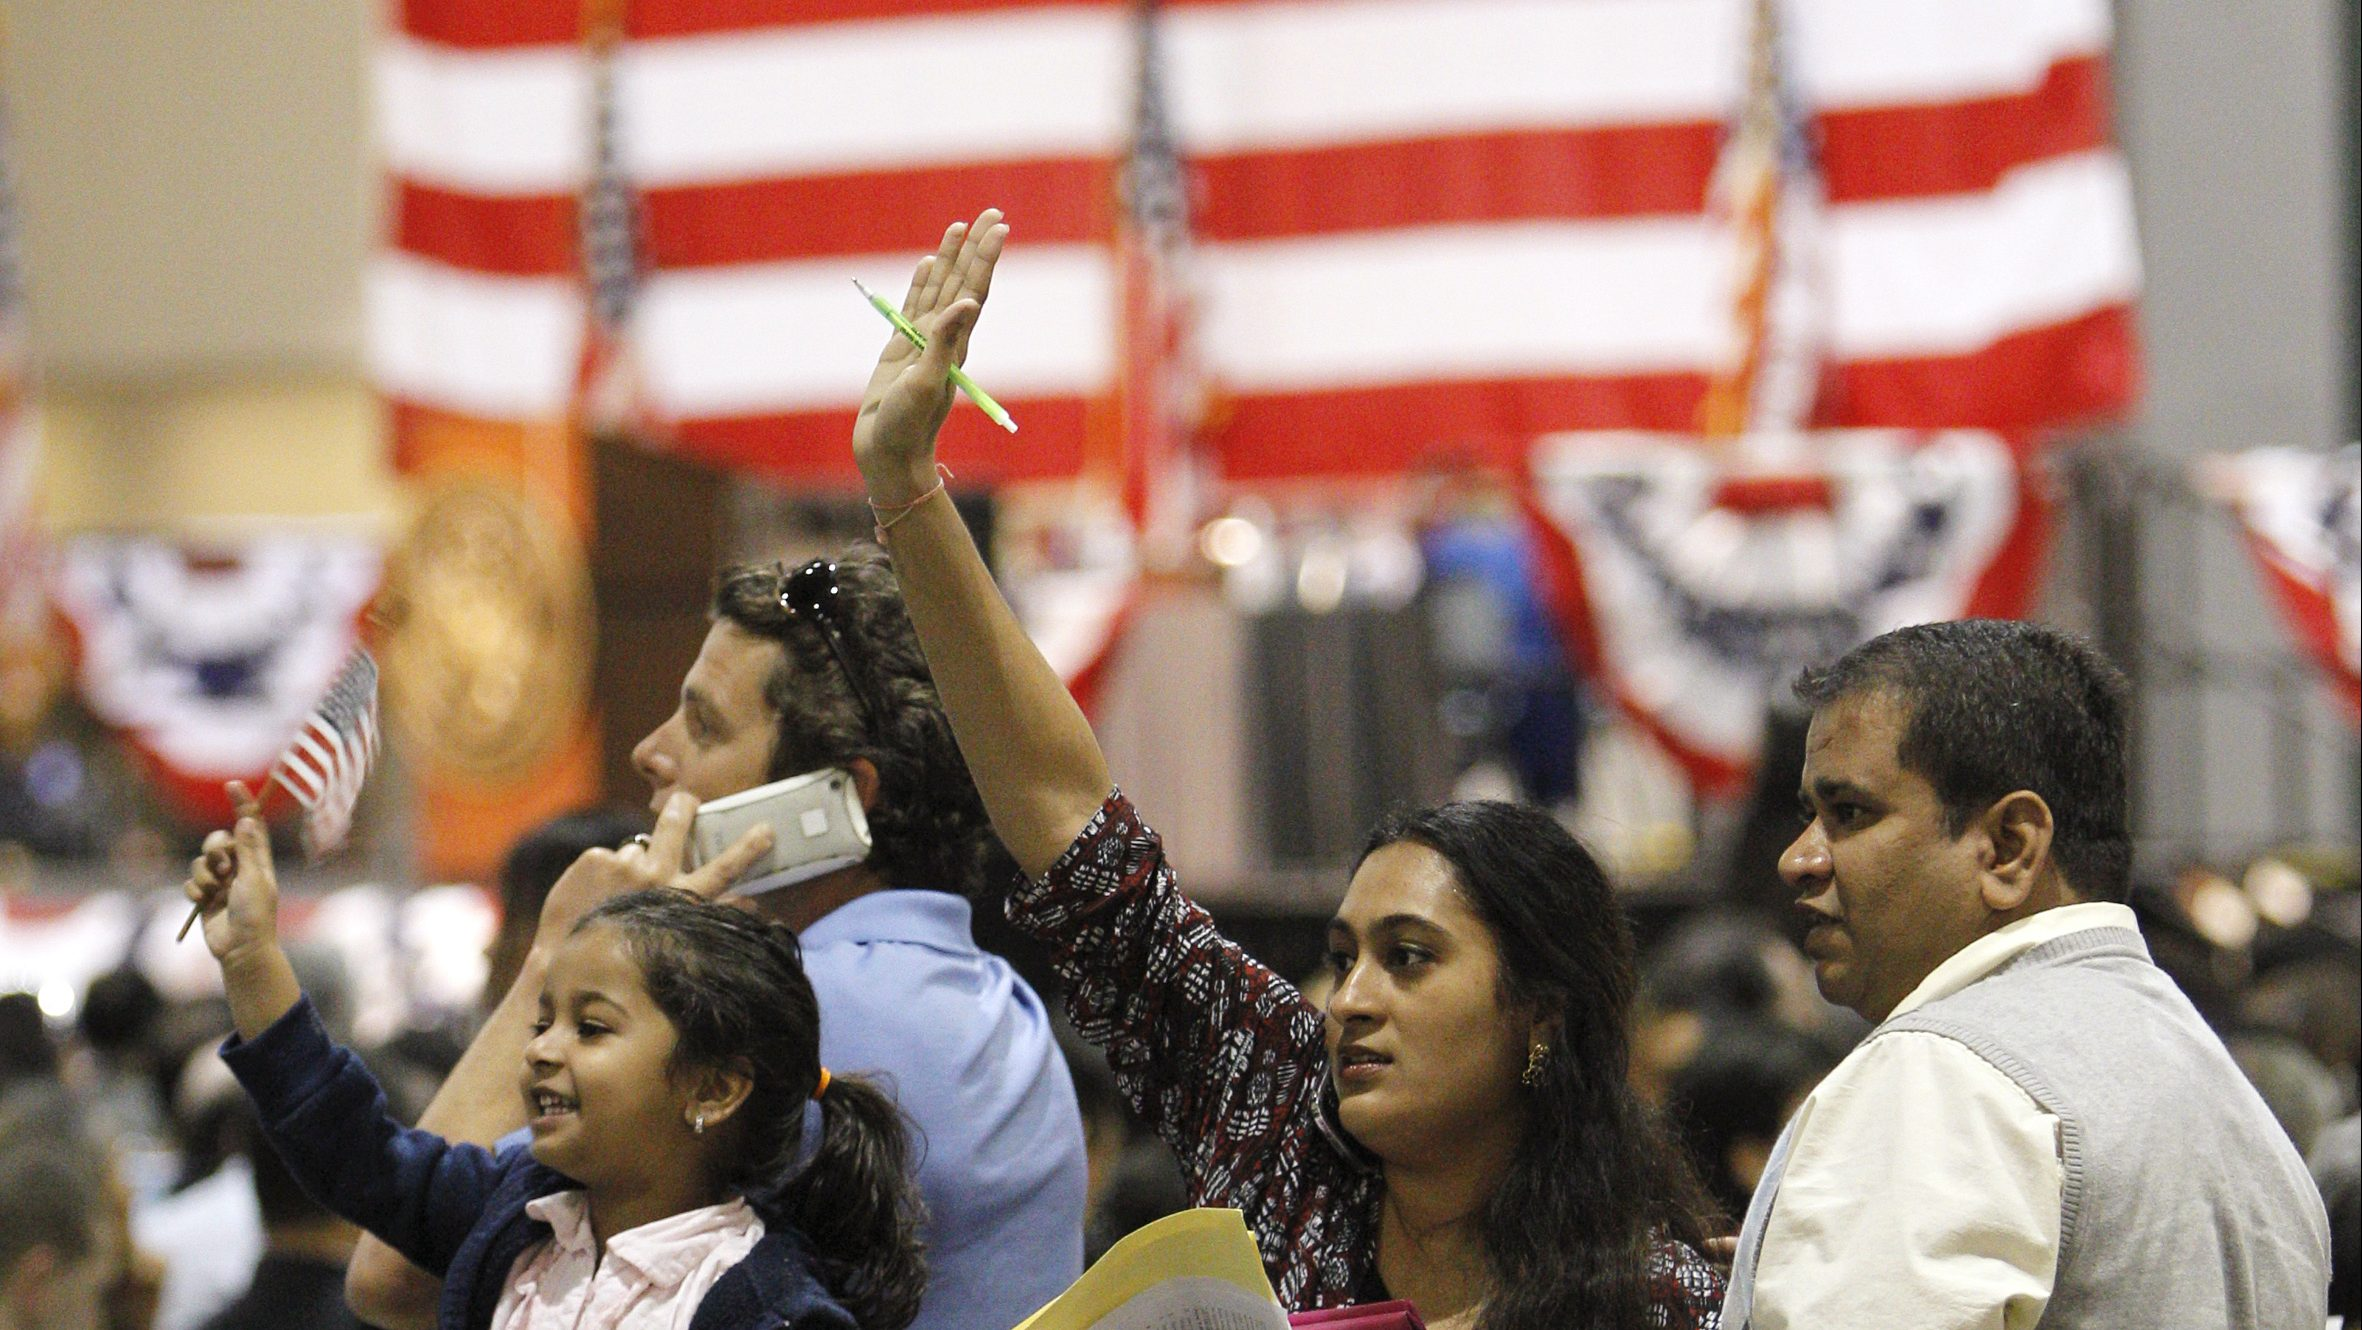 Sarika Vakil (C), her husband Tejas Vakil (R), originally from Mumbai, India and their four-year-old daughter Tashu (L) wave to family members who were in attendance to support them, before Sarika and Tejas, together with thousands of immigrants, take the oath of allegiance to the U.S. Constitution, as the final step to becoming a naturalized U.S. citizen, during naturalization ceremonies in Los Angeles, March 31, 2010. Tashu is a U.S. citizen as she was born in the U.S. REUTERS/Danny Moloshok (UNITED STATES - Tags: SOCIETY POLITICS) - GM1E6410I1901